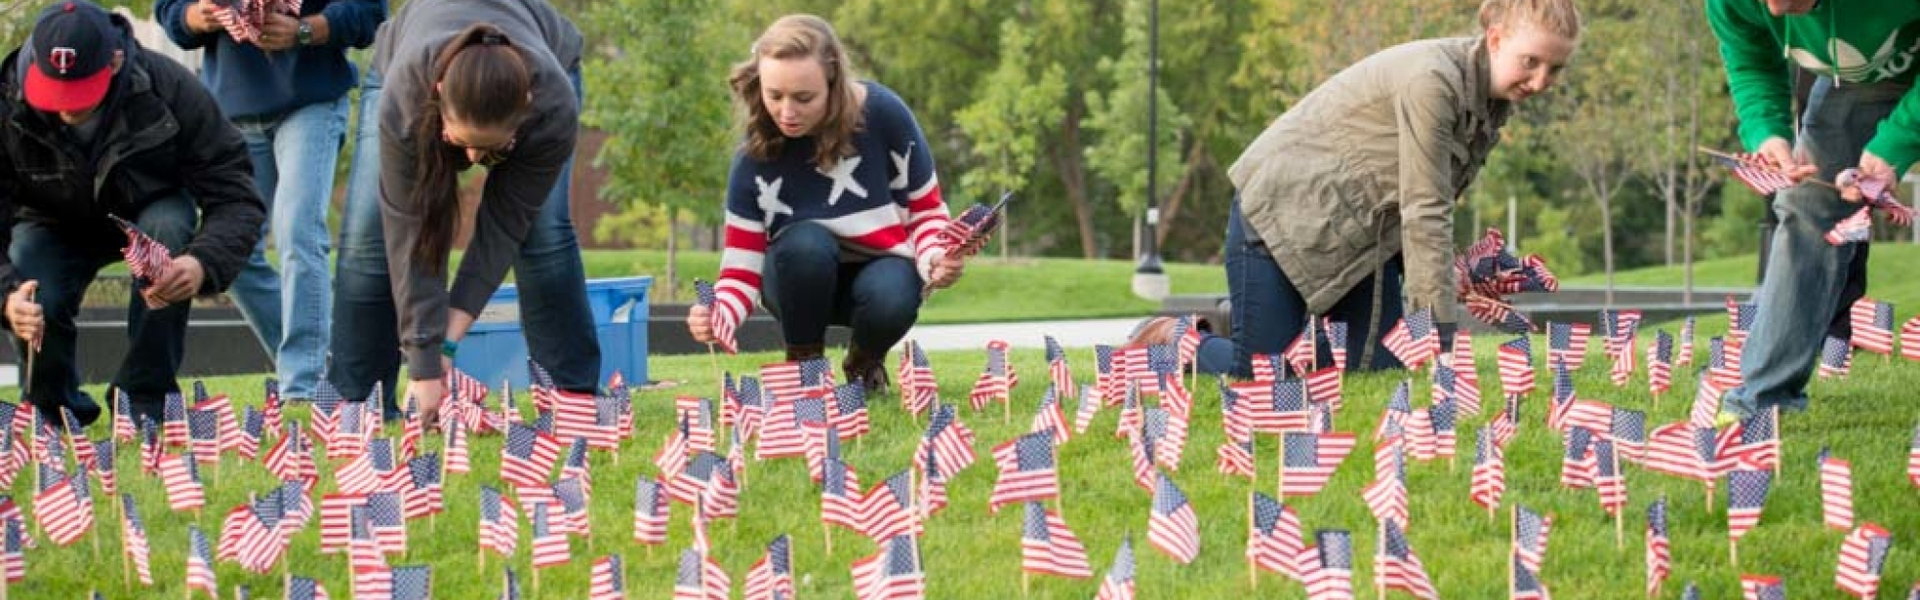 Students place U.S. flags on the UW-Eau Claire campus mall in honor of Veterans Day.